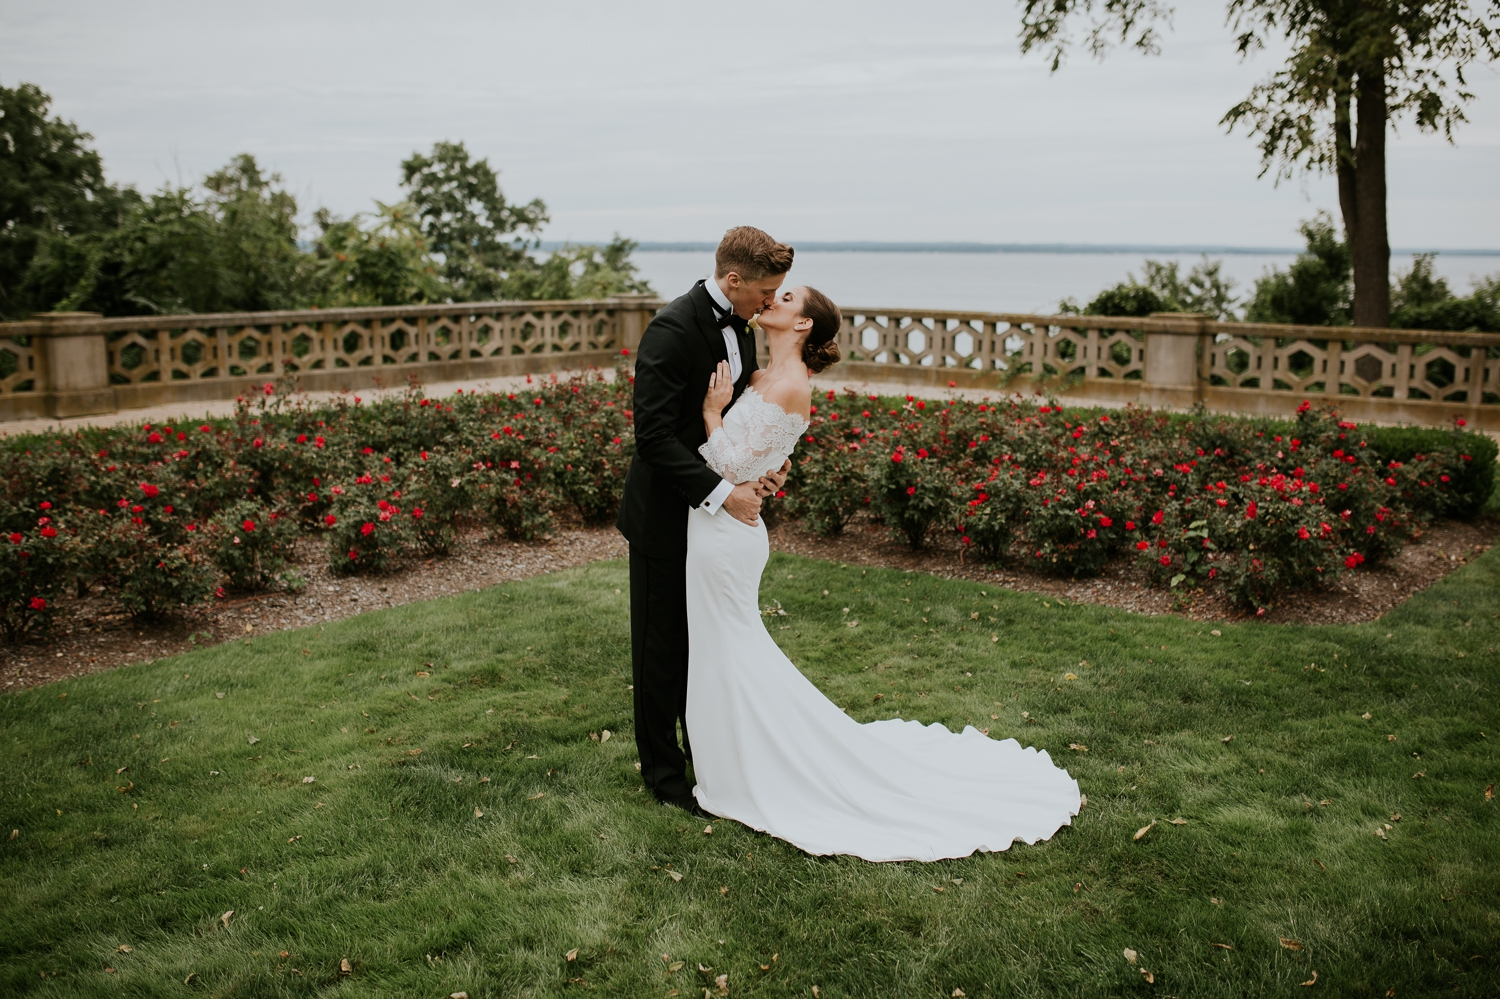 hempstead_house_new_york_wedding_photographer 57.jpg